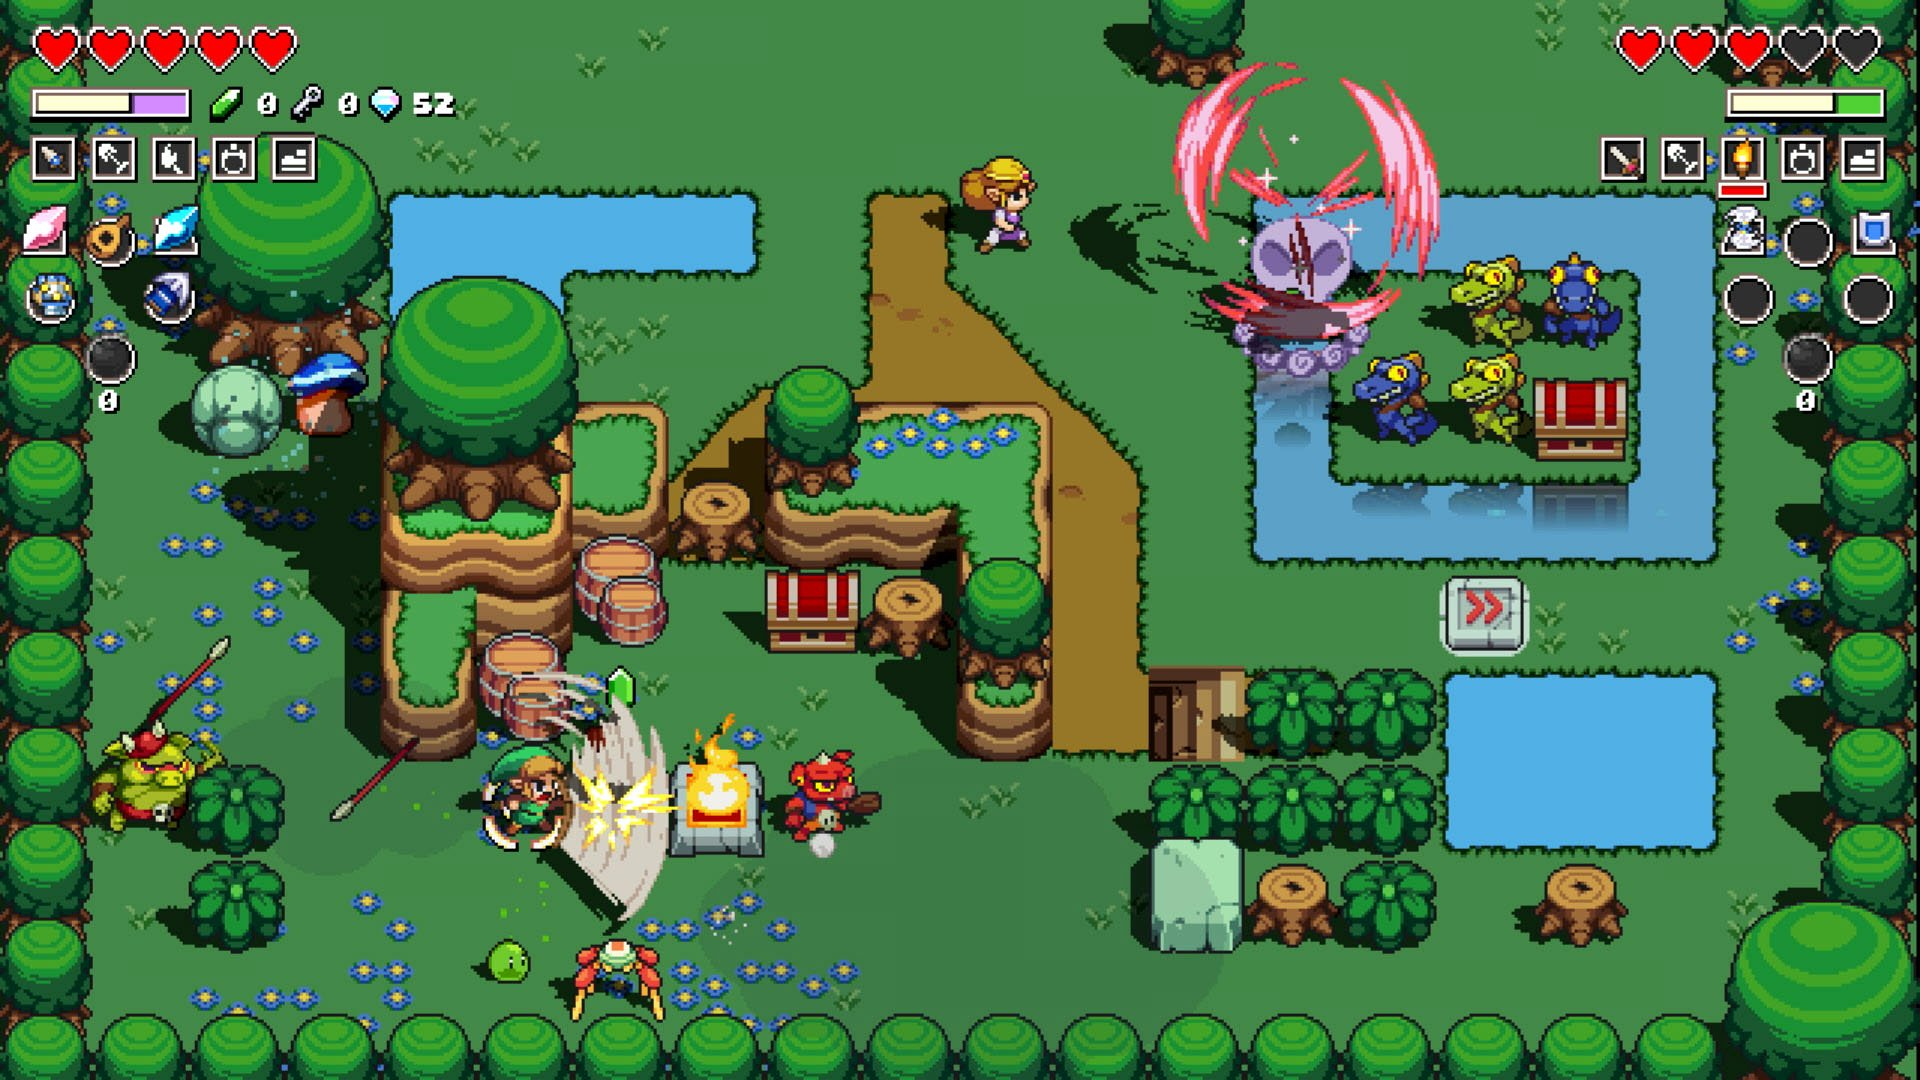 How to get the Flippers in Cadence of Hyrule | Shacknews